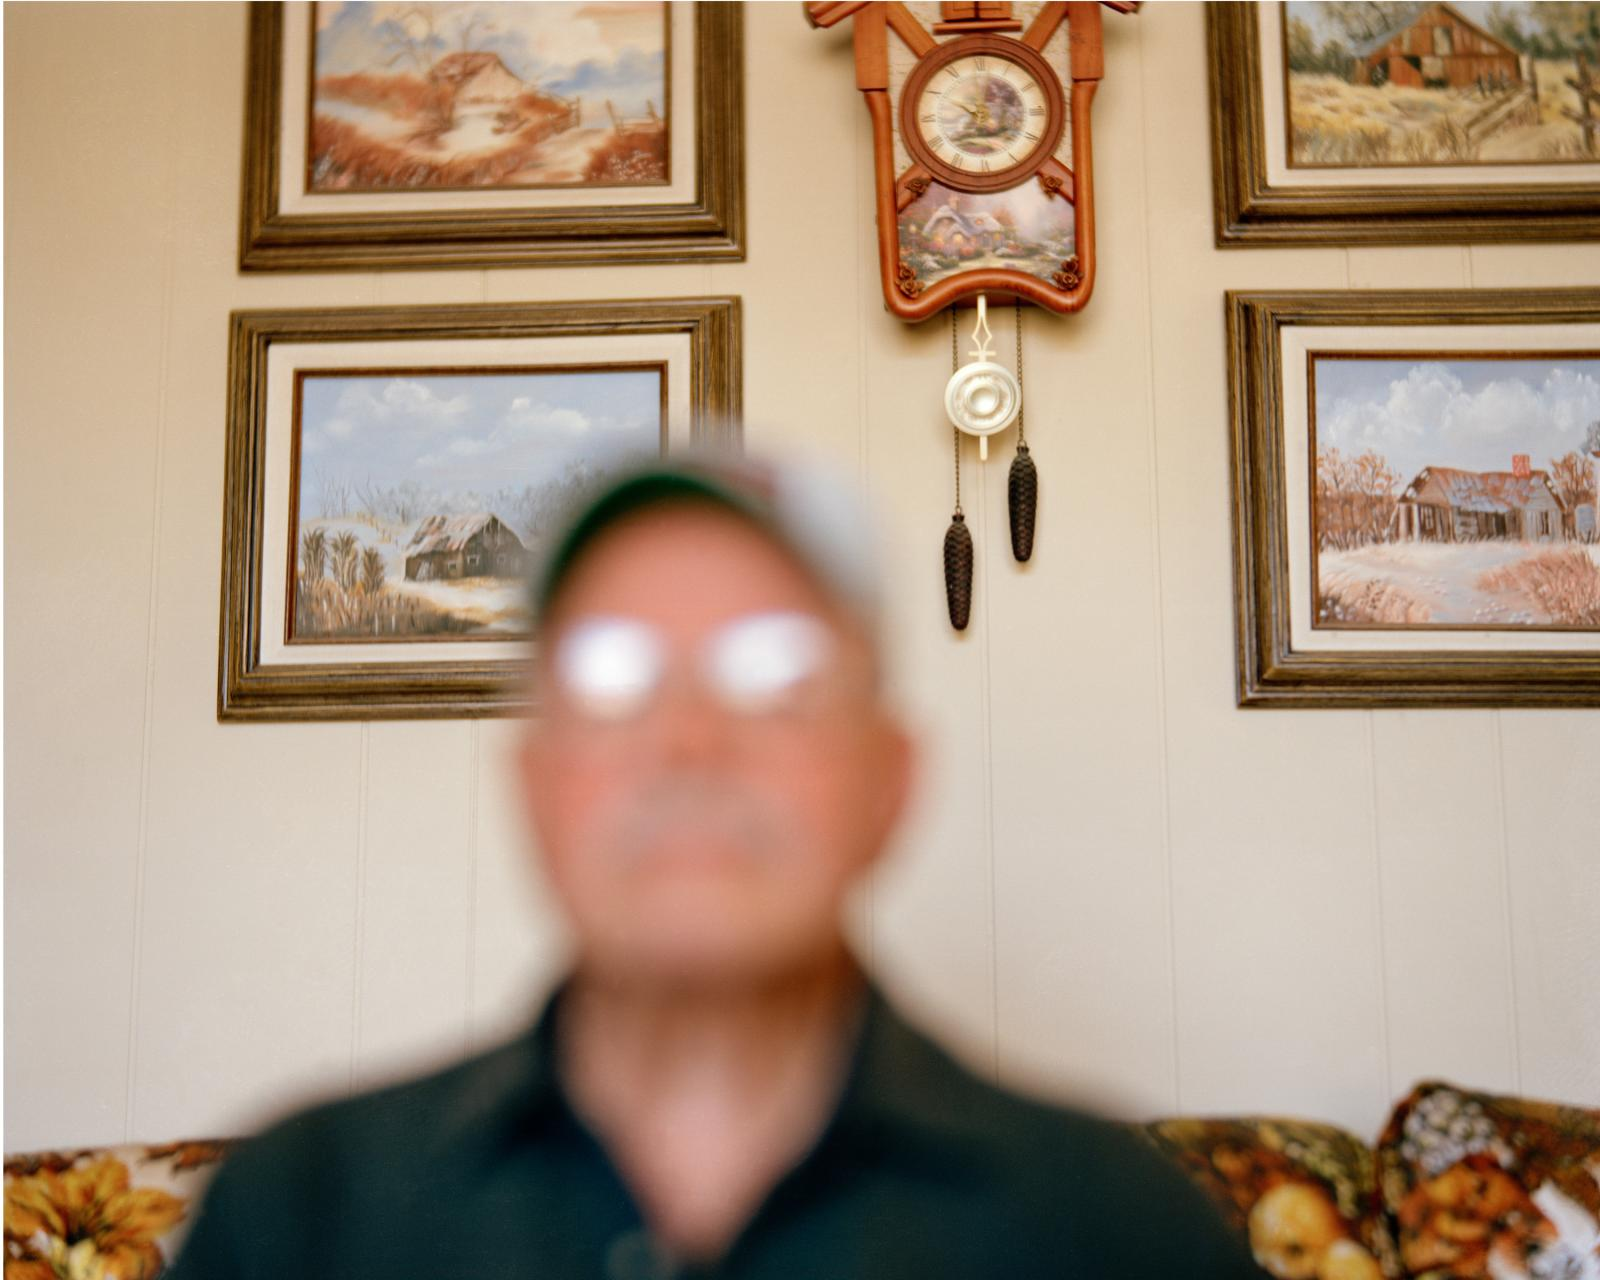 """San Antonio, NM, Tiburcio Padilla born January 20, 1933, witnessed the Trinity Bomb test as a 12-year-old child. - Photographed at home in San Antonio, NM He and three of his siblings grew up to be sterile. Tiburcio Padilla, 83, looks out his window while recalling the day on July 16, 1945 when as a boy he witnessed the first atomic bomb blast. """"All of a sudden we heard that boom and we saw that mushroom cloud come up. The ground just shook all over. We didn't know what happened."""" The atomic age had been born thirty miles away in the Jornado del Muerto desert. The Trinity test marked the triumph of the Manhattan Project and paved the way for the quick assembly of nuclear weapons, which were dropped August 6 and August 9 on Hiroshima and Nagasaki, killing and maiming hundreds of thousands. Residents living around the Trinity test site were never monitored or studied for health impacts, unlike down winders in Nevada and Utah. In 2014, the National Cancer Institute began a survey, a full 69 years after the event. Padilla grew up sterile, as did another brother and two of his sisters. Four out of twelve children in his family were unable to conceive. He wonders if his proximity to the test and resulting radiation rendered him infertile. The Trinity test site is open to the public two days a year. It still emits high levels or radiation."""